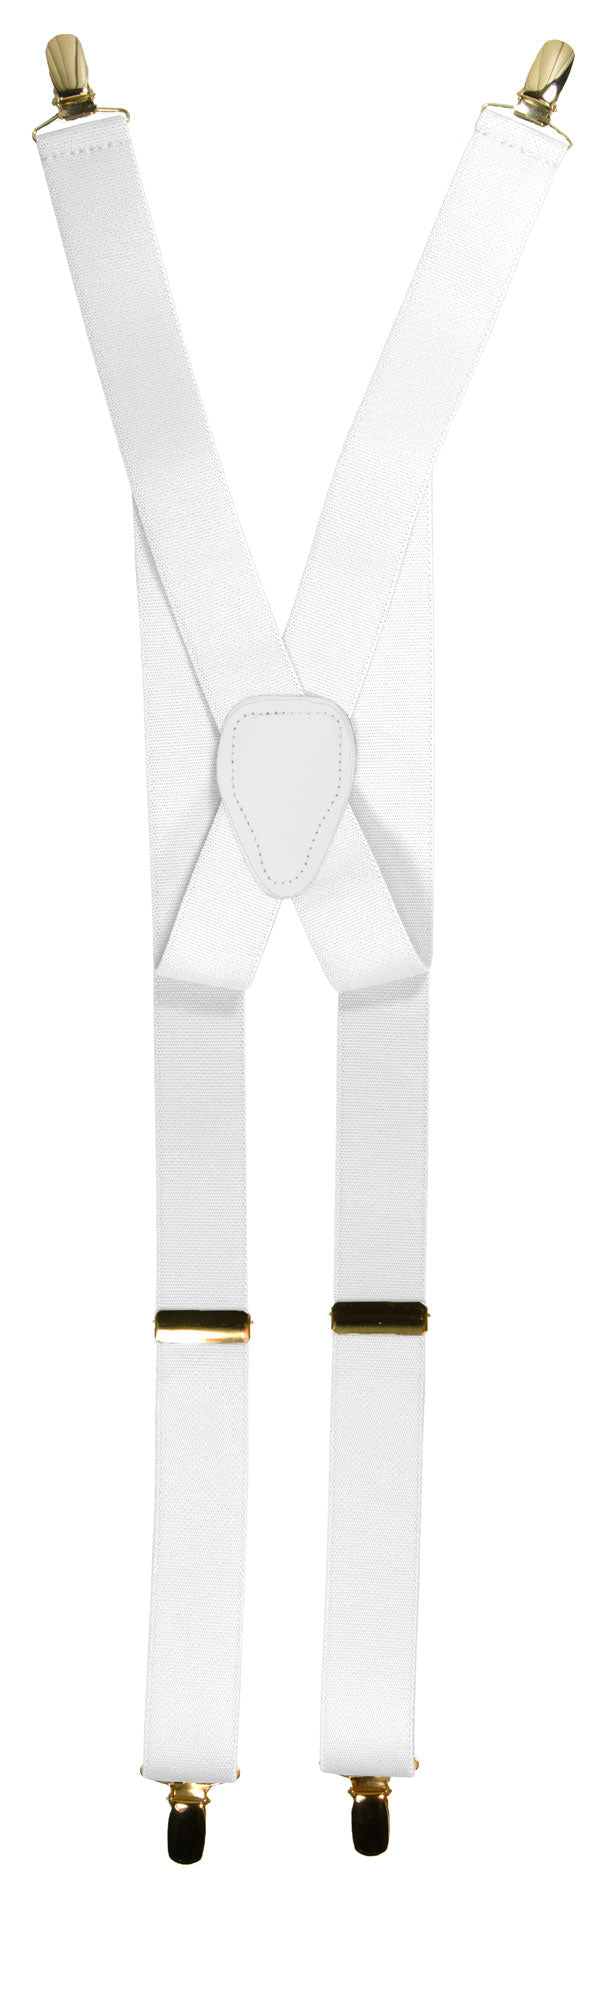 White Clip End Suspender